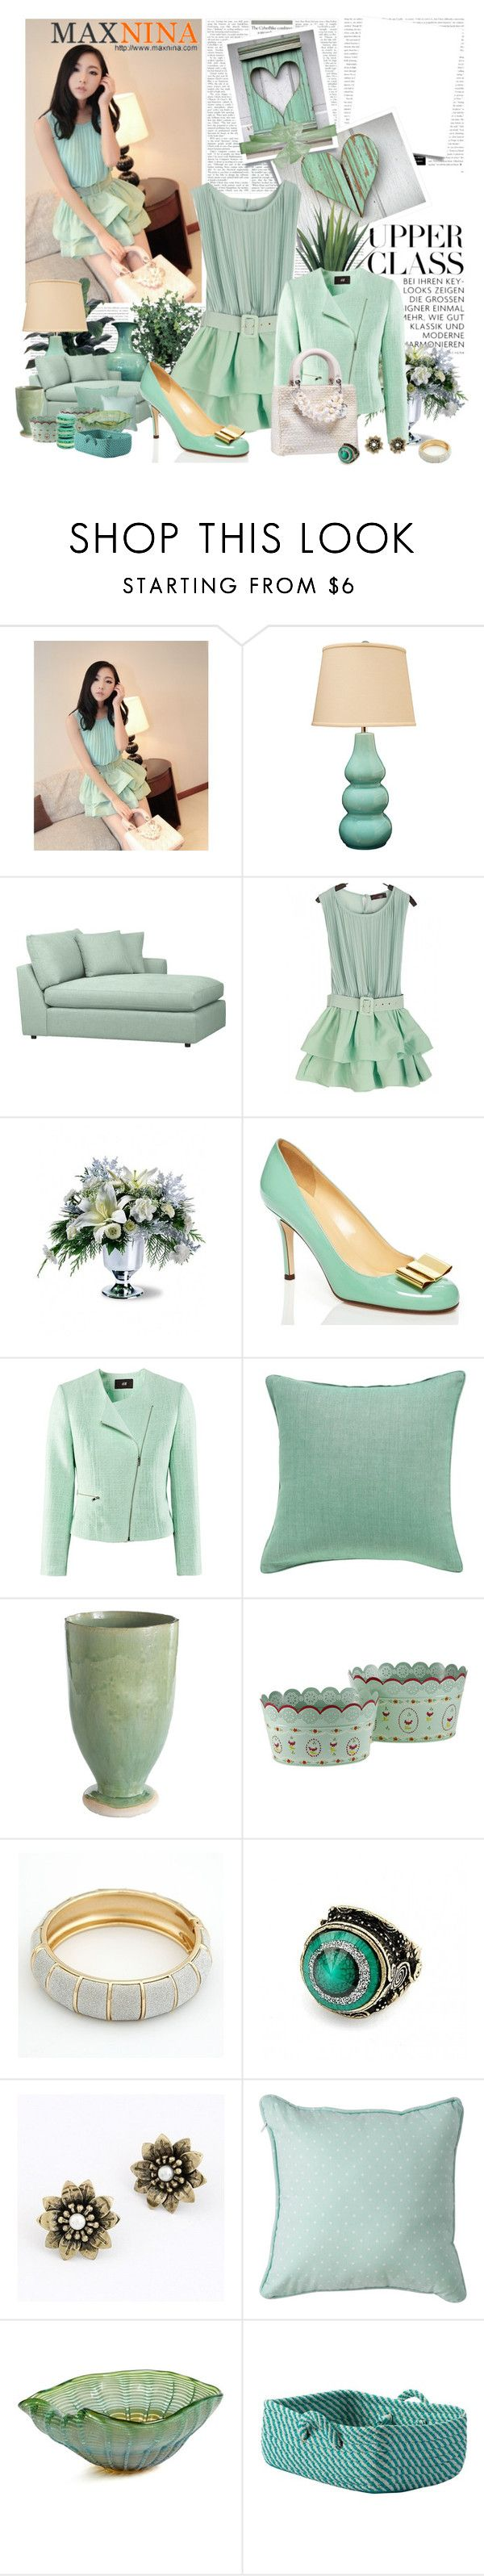 """""""Spring in Mint"""" by pilar-elena ❤ liked on Polyvore featuring INC International Concepts, Crate and Barrel, Kate Spade, H&M, OKA, TAJ Wood & Scherer, Retrò, Royal Albert, ANISE and Ethan Allen"""